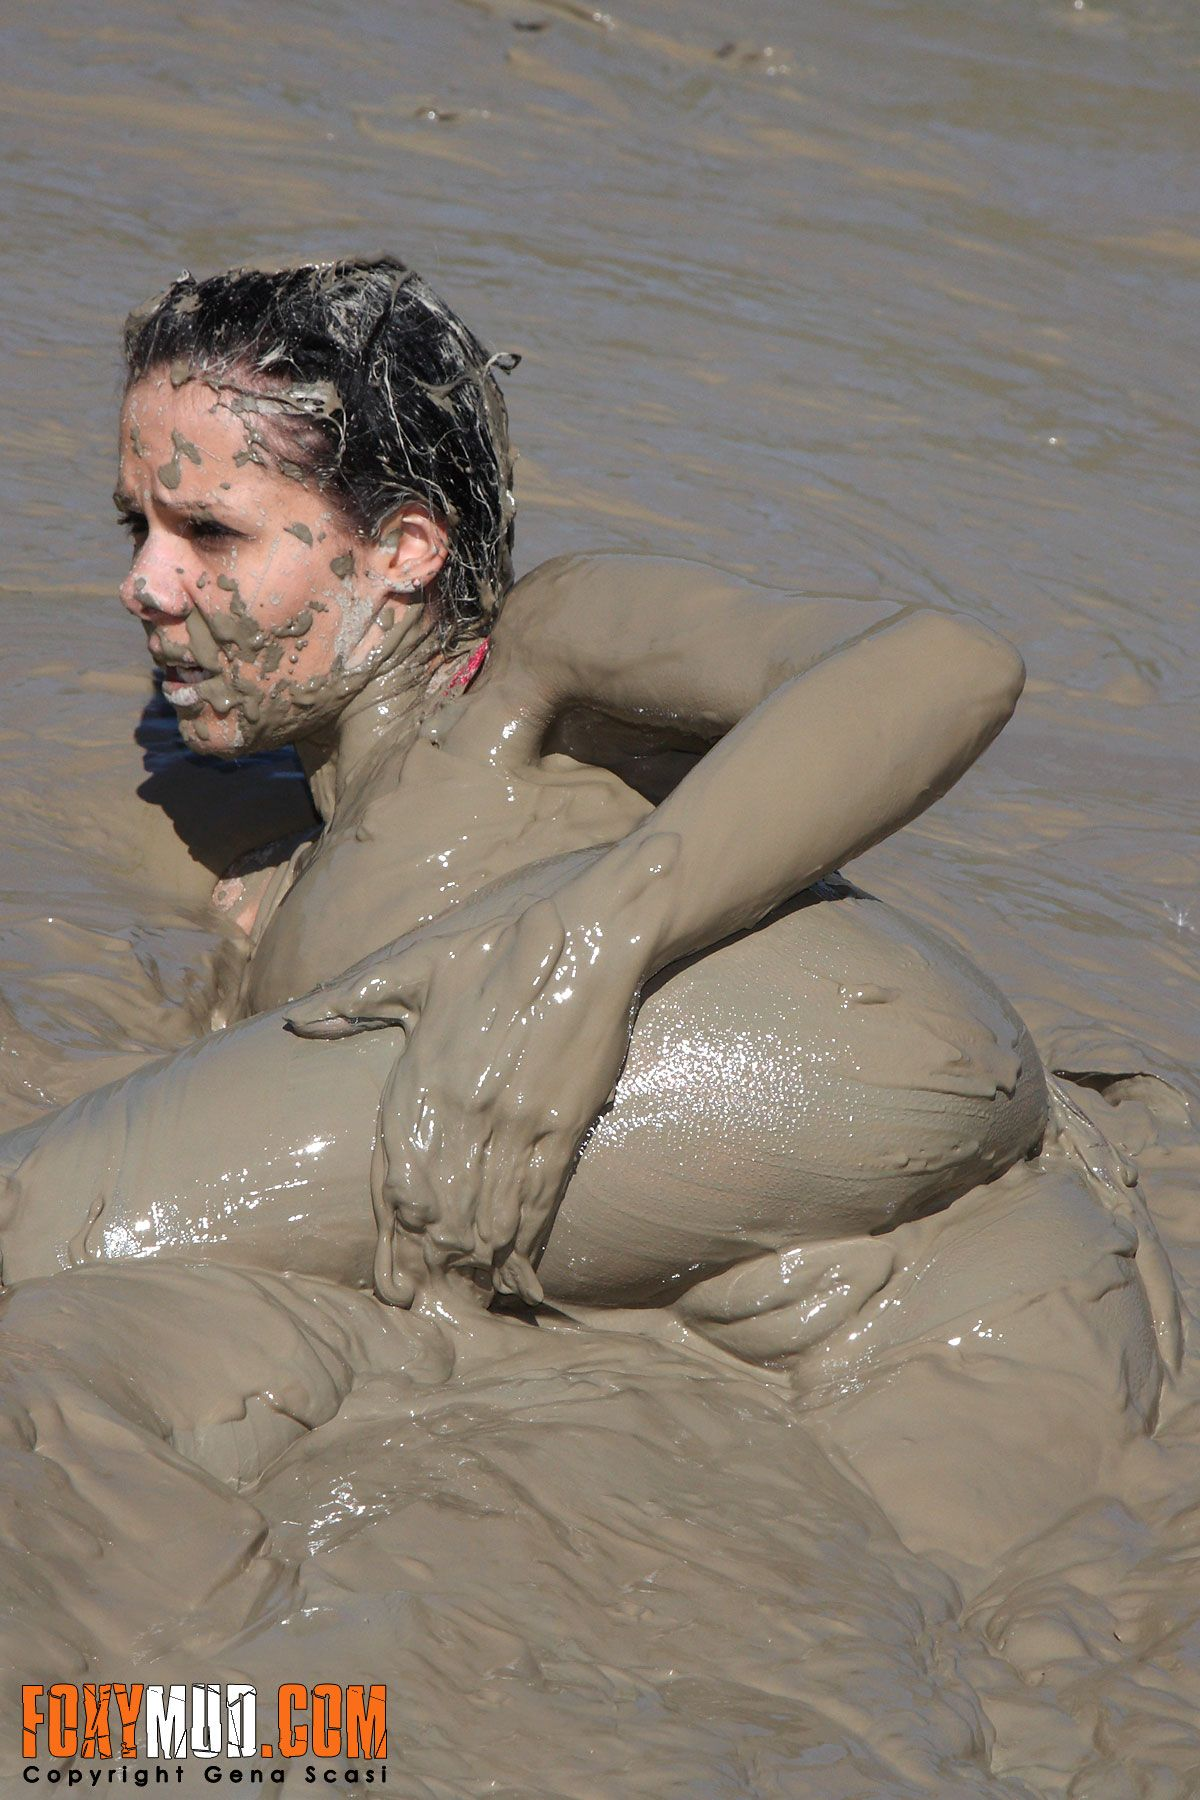 Seems Naked girl in mud for council